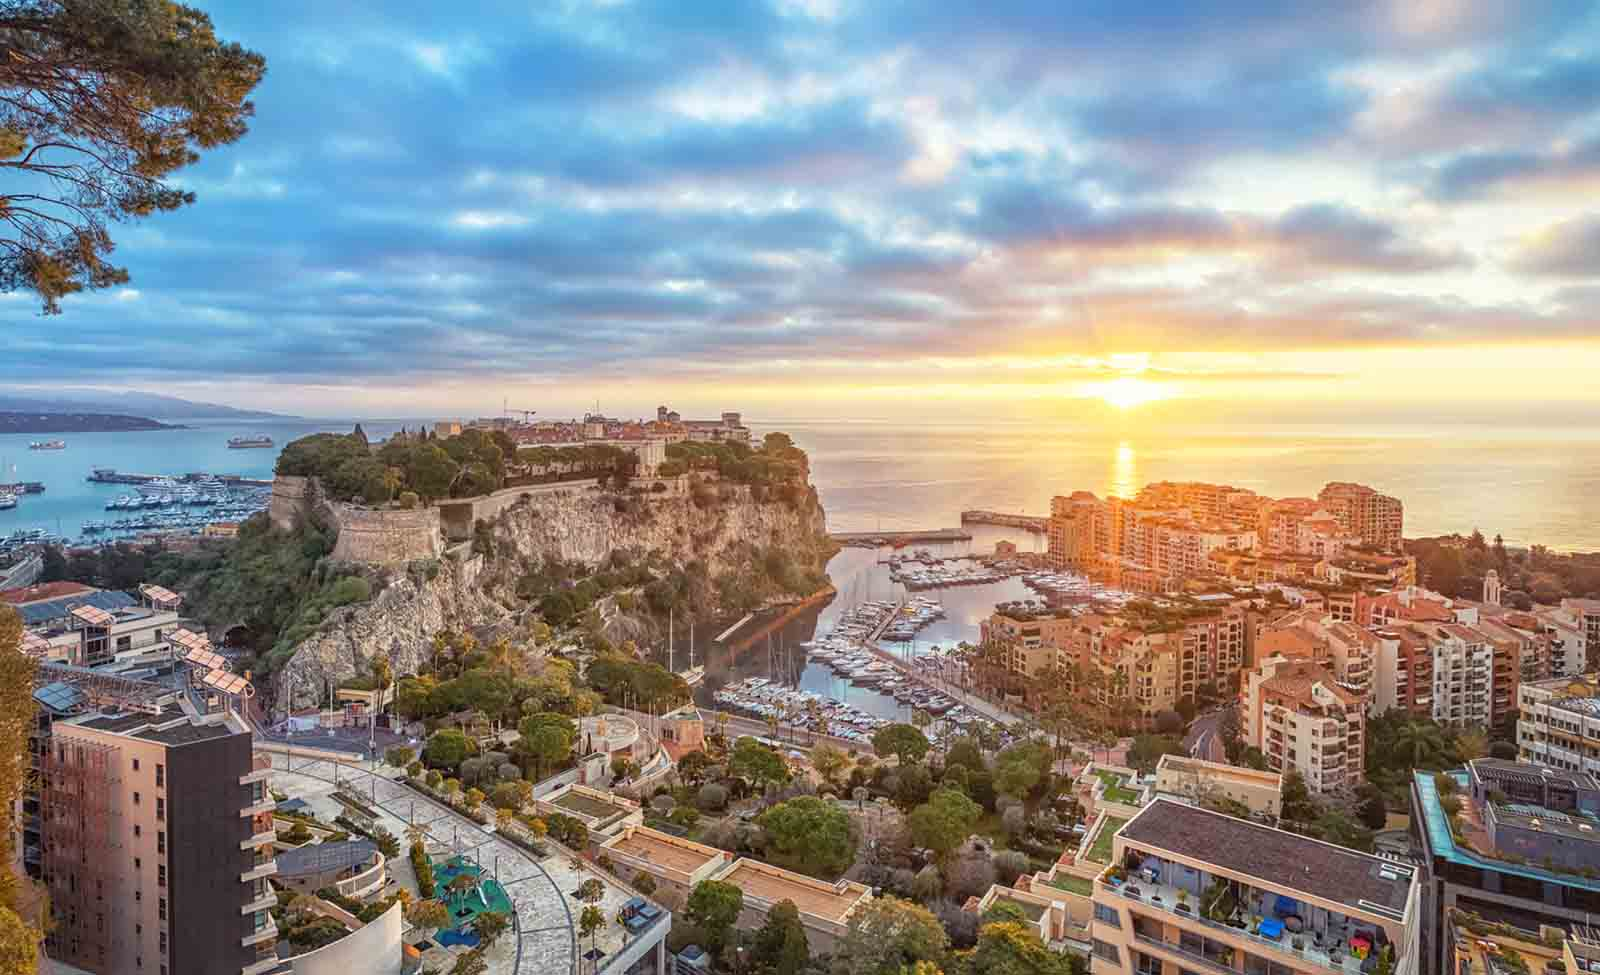 Monaco is the city with highest density of millionaires in the world